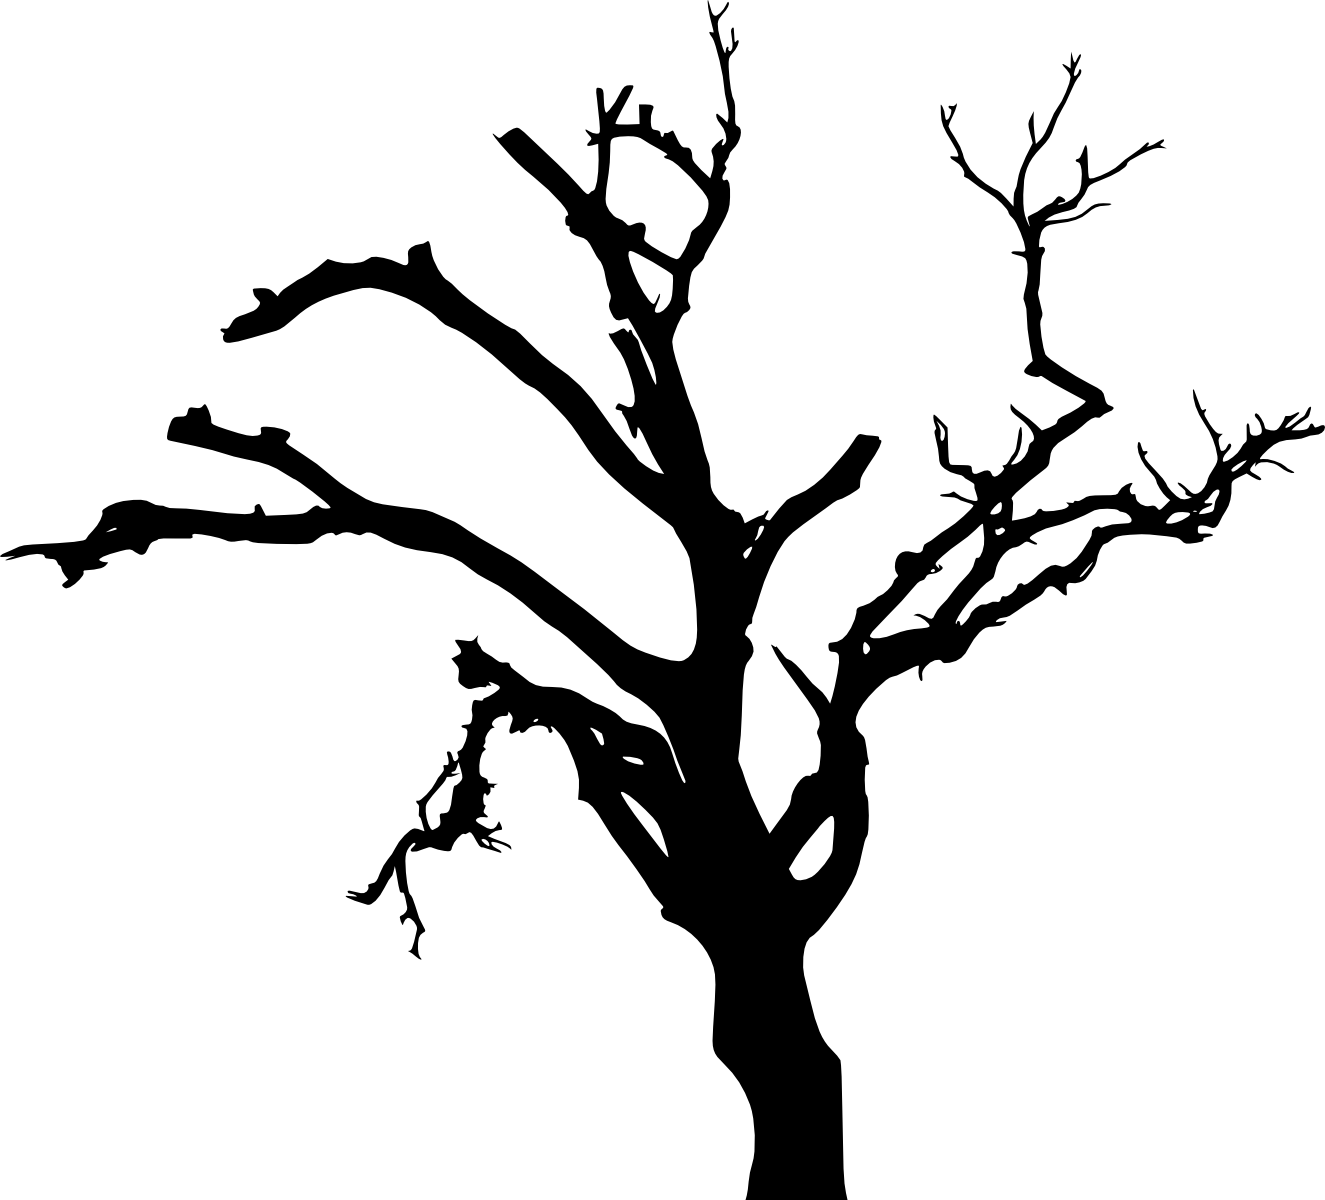 Download 10 Spooky Dead Tree Silhouette Vol Scary Tree Silhouette Png Full Size Png Image Pngkit